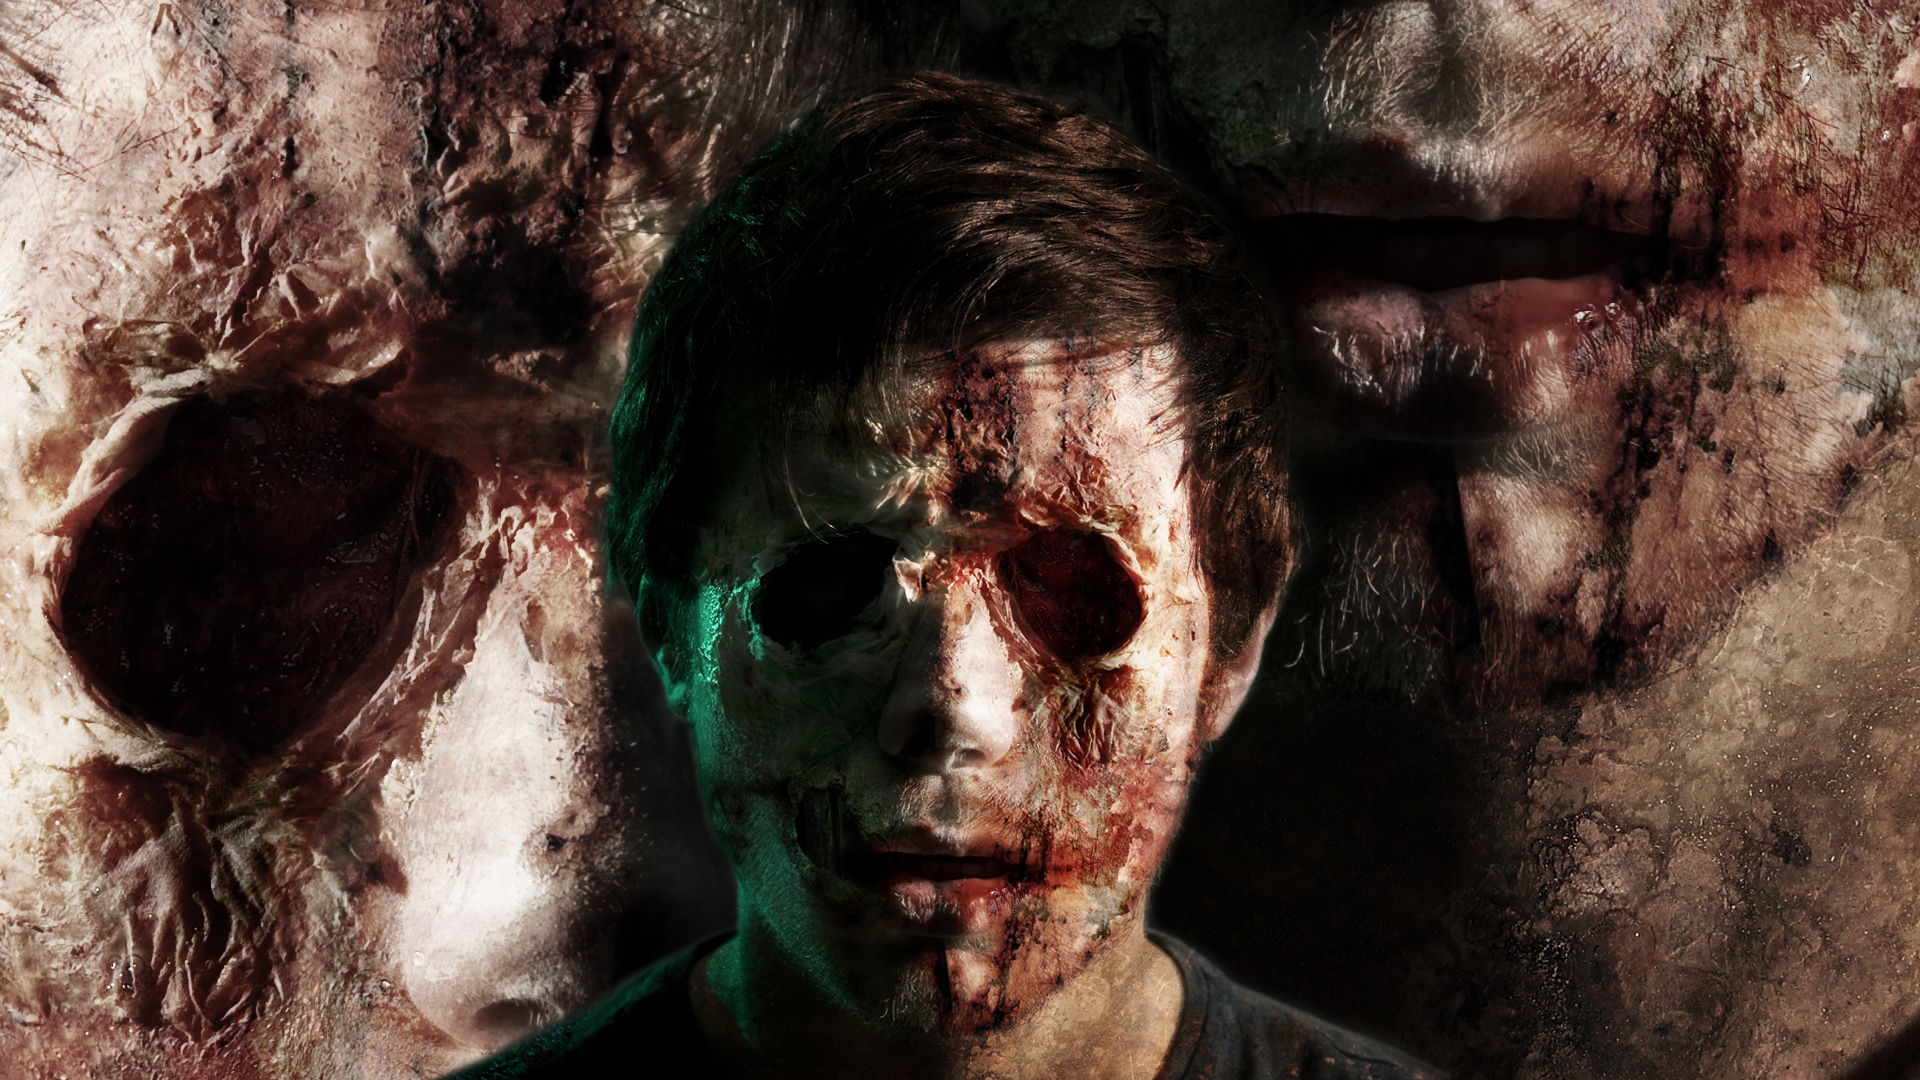 Zombie wallpapers hd free download zombie wallpapers hd voltagebd Gallery